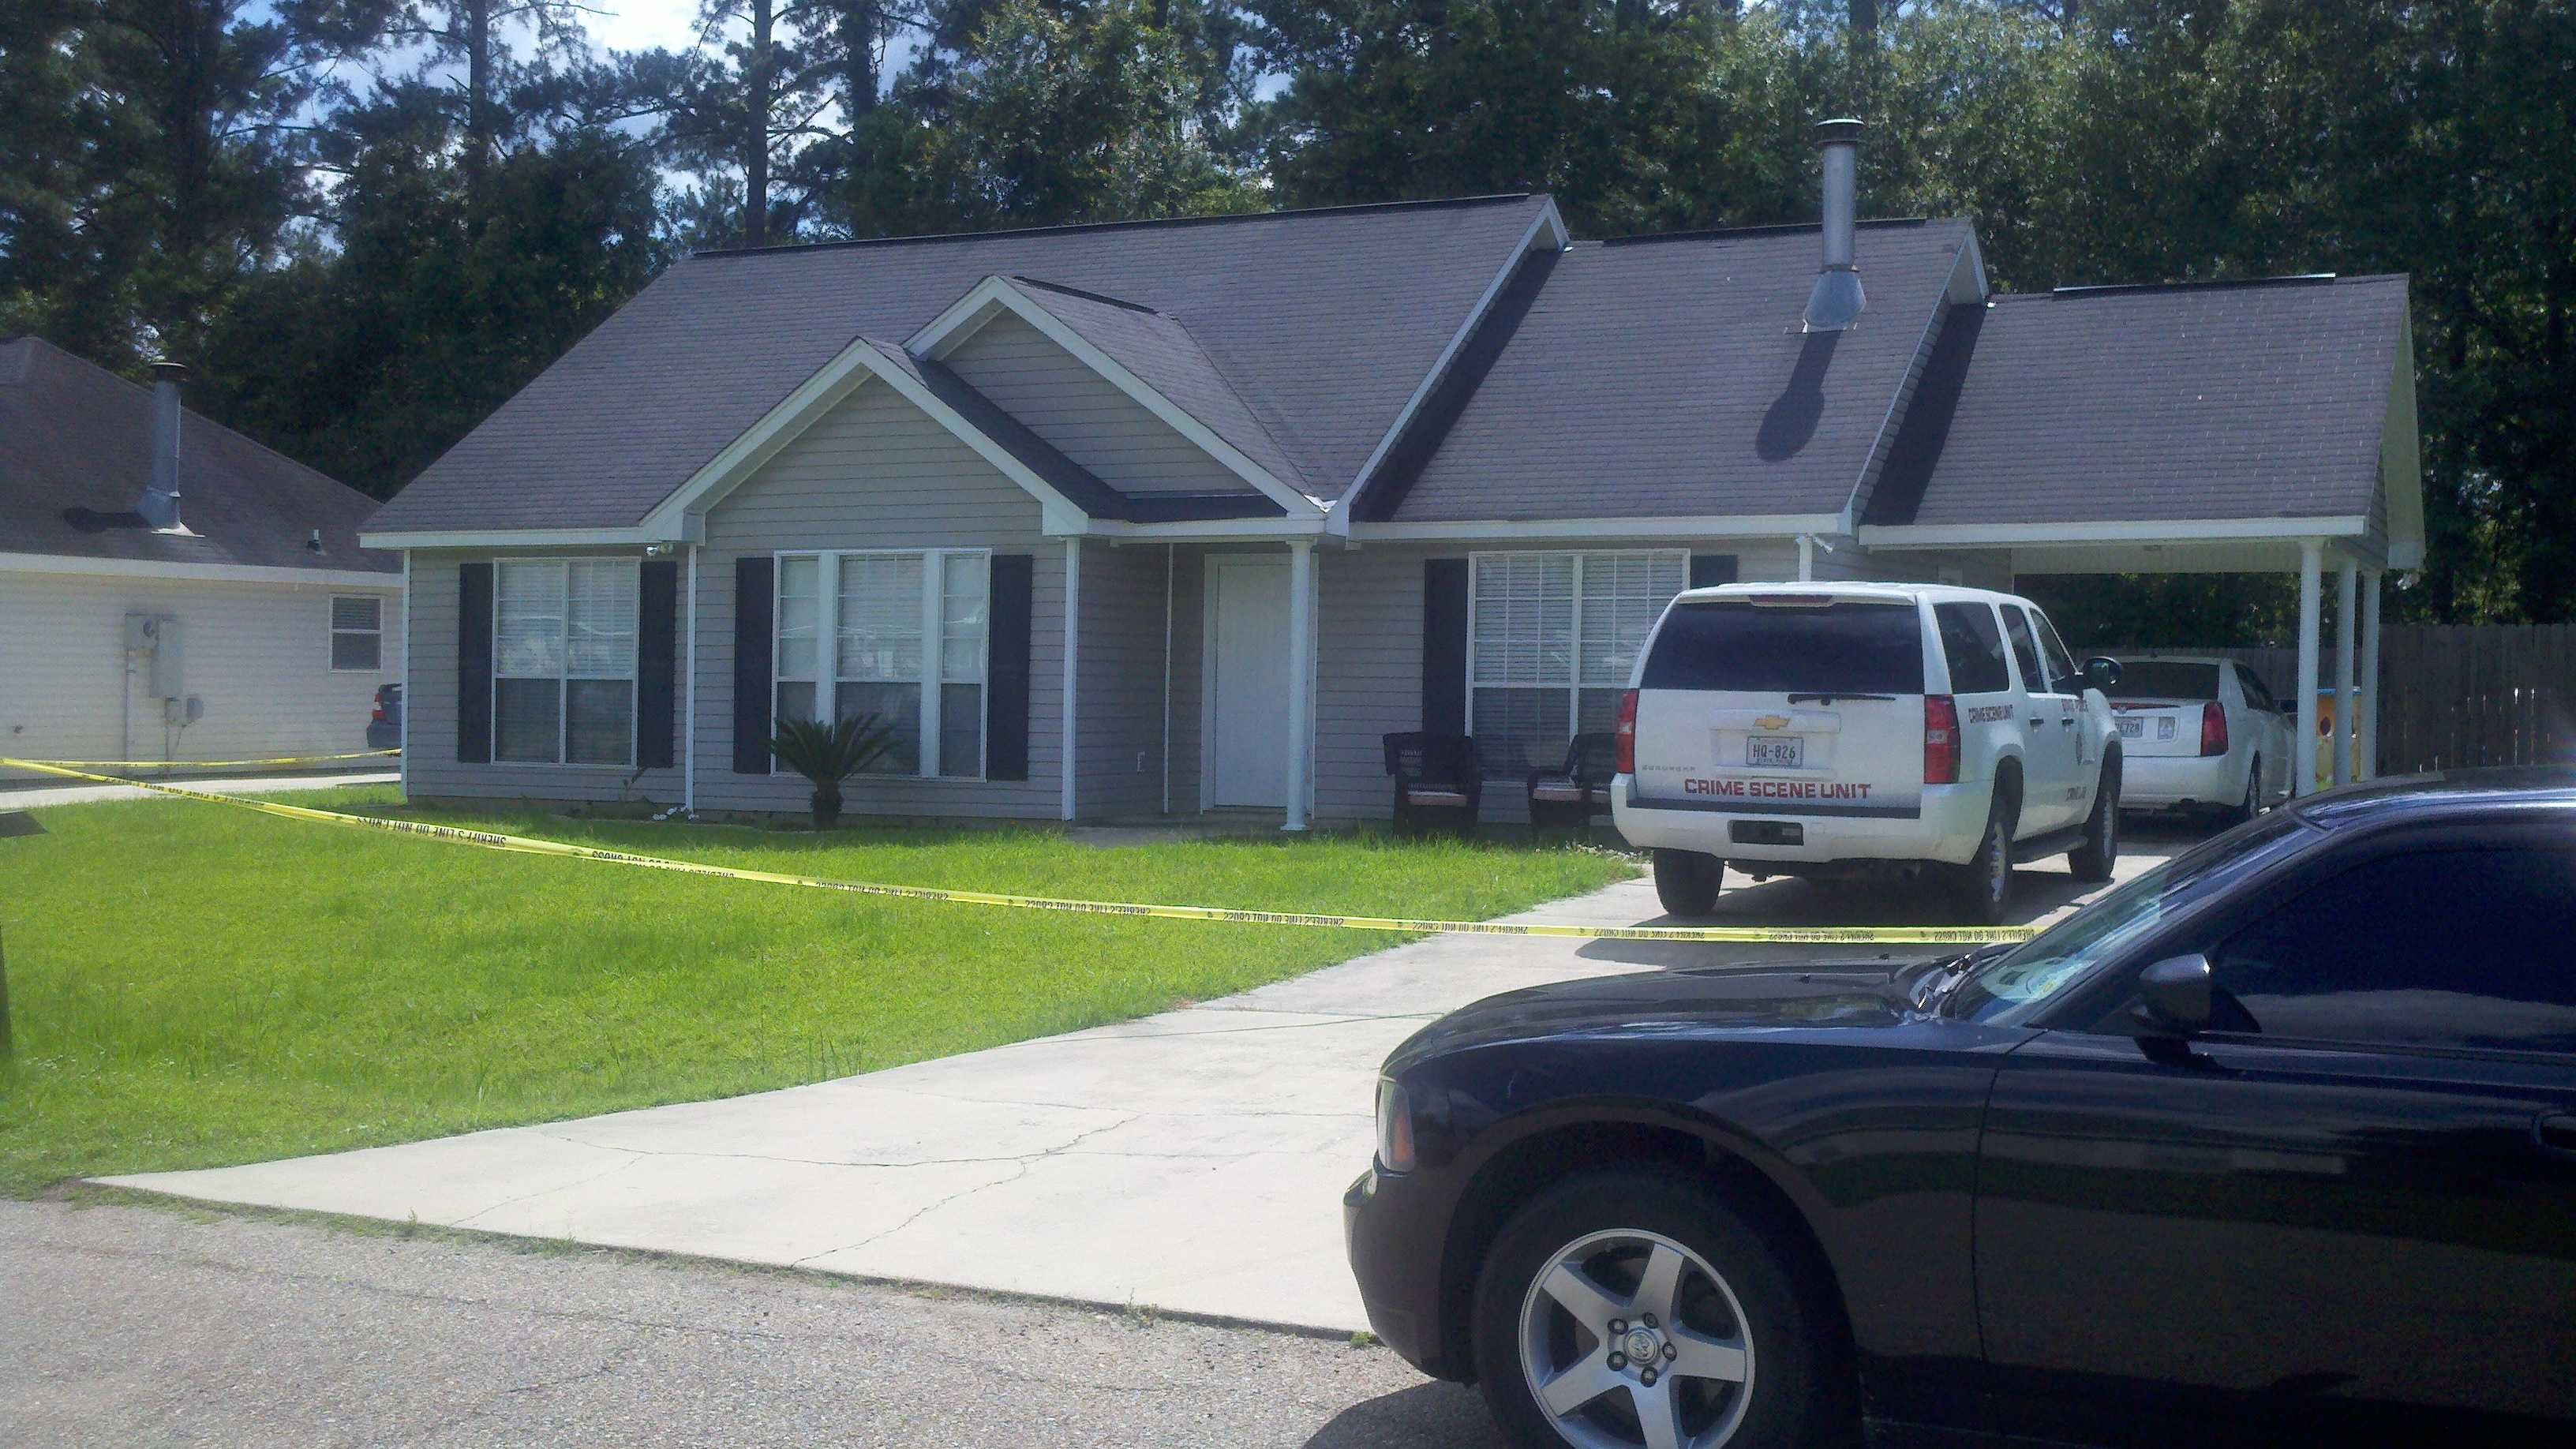 Authorities in Tangipahoa Parish found a man and woman dead from an apparent murder-suicide. A 5-month-old baby was found alive in the home.